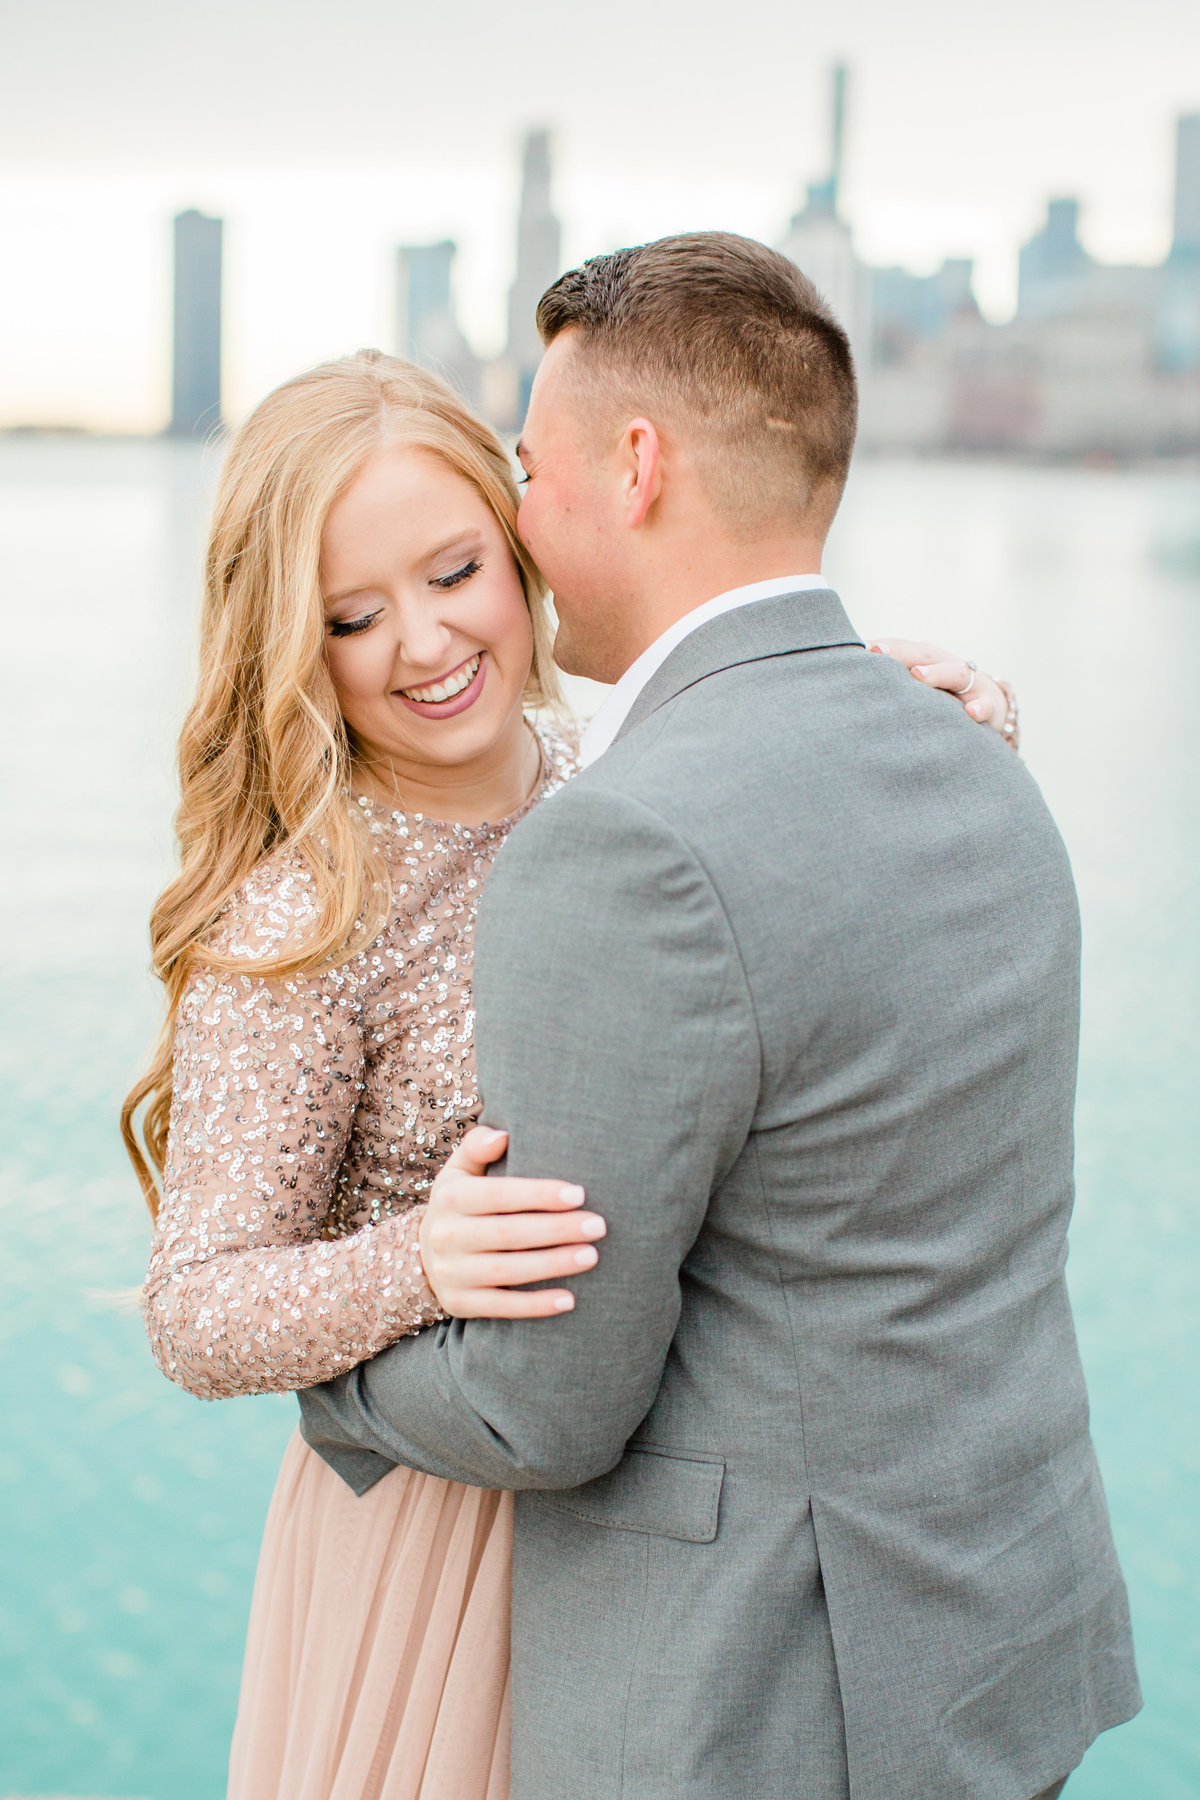 lindsey-taylor-photography-north-avenue-beach-chicago-engagement-photographer12